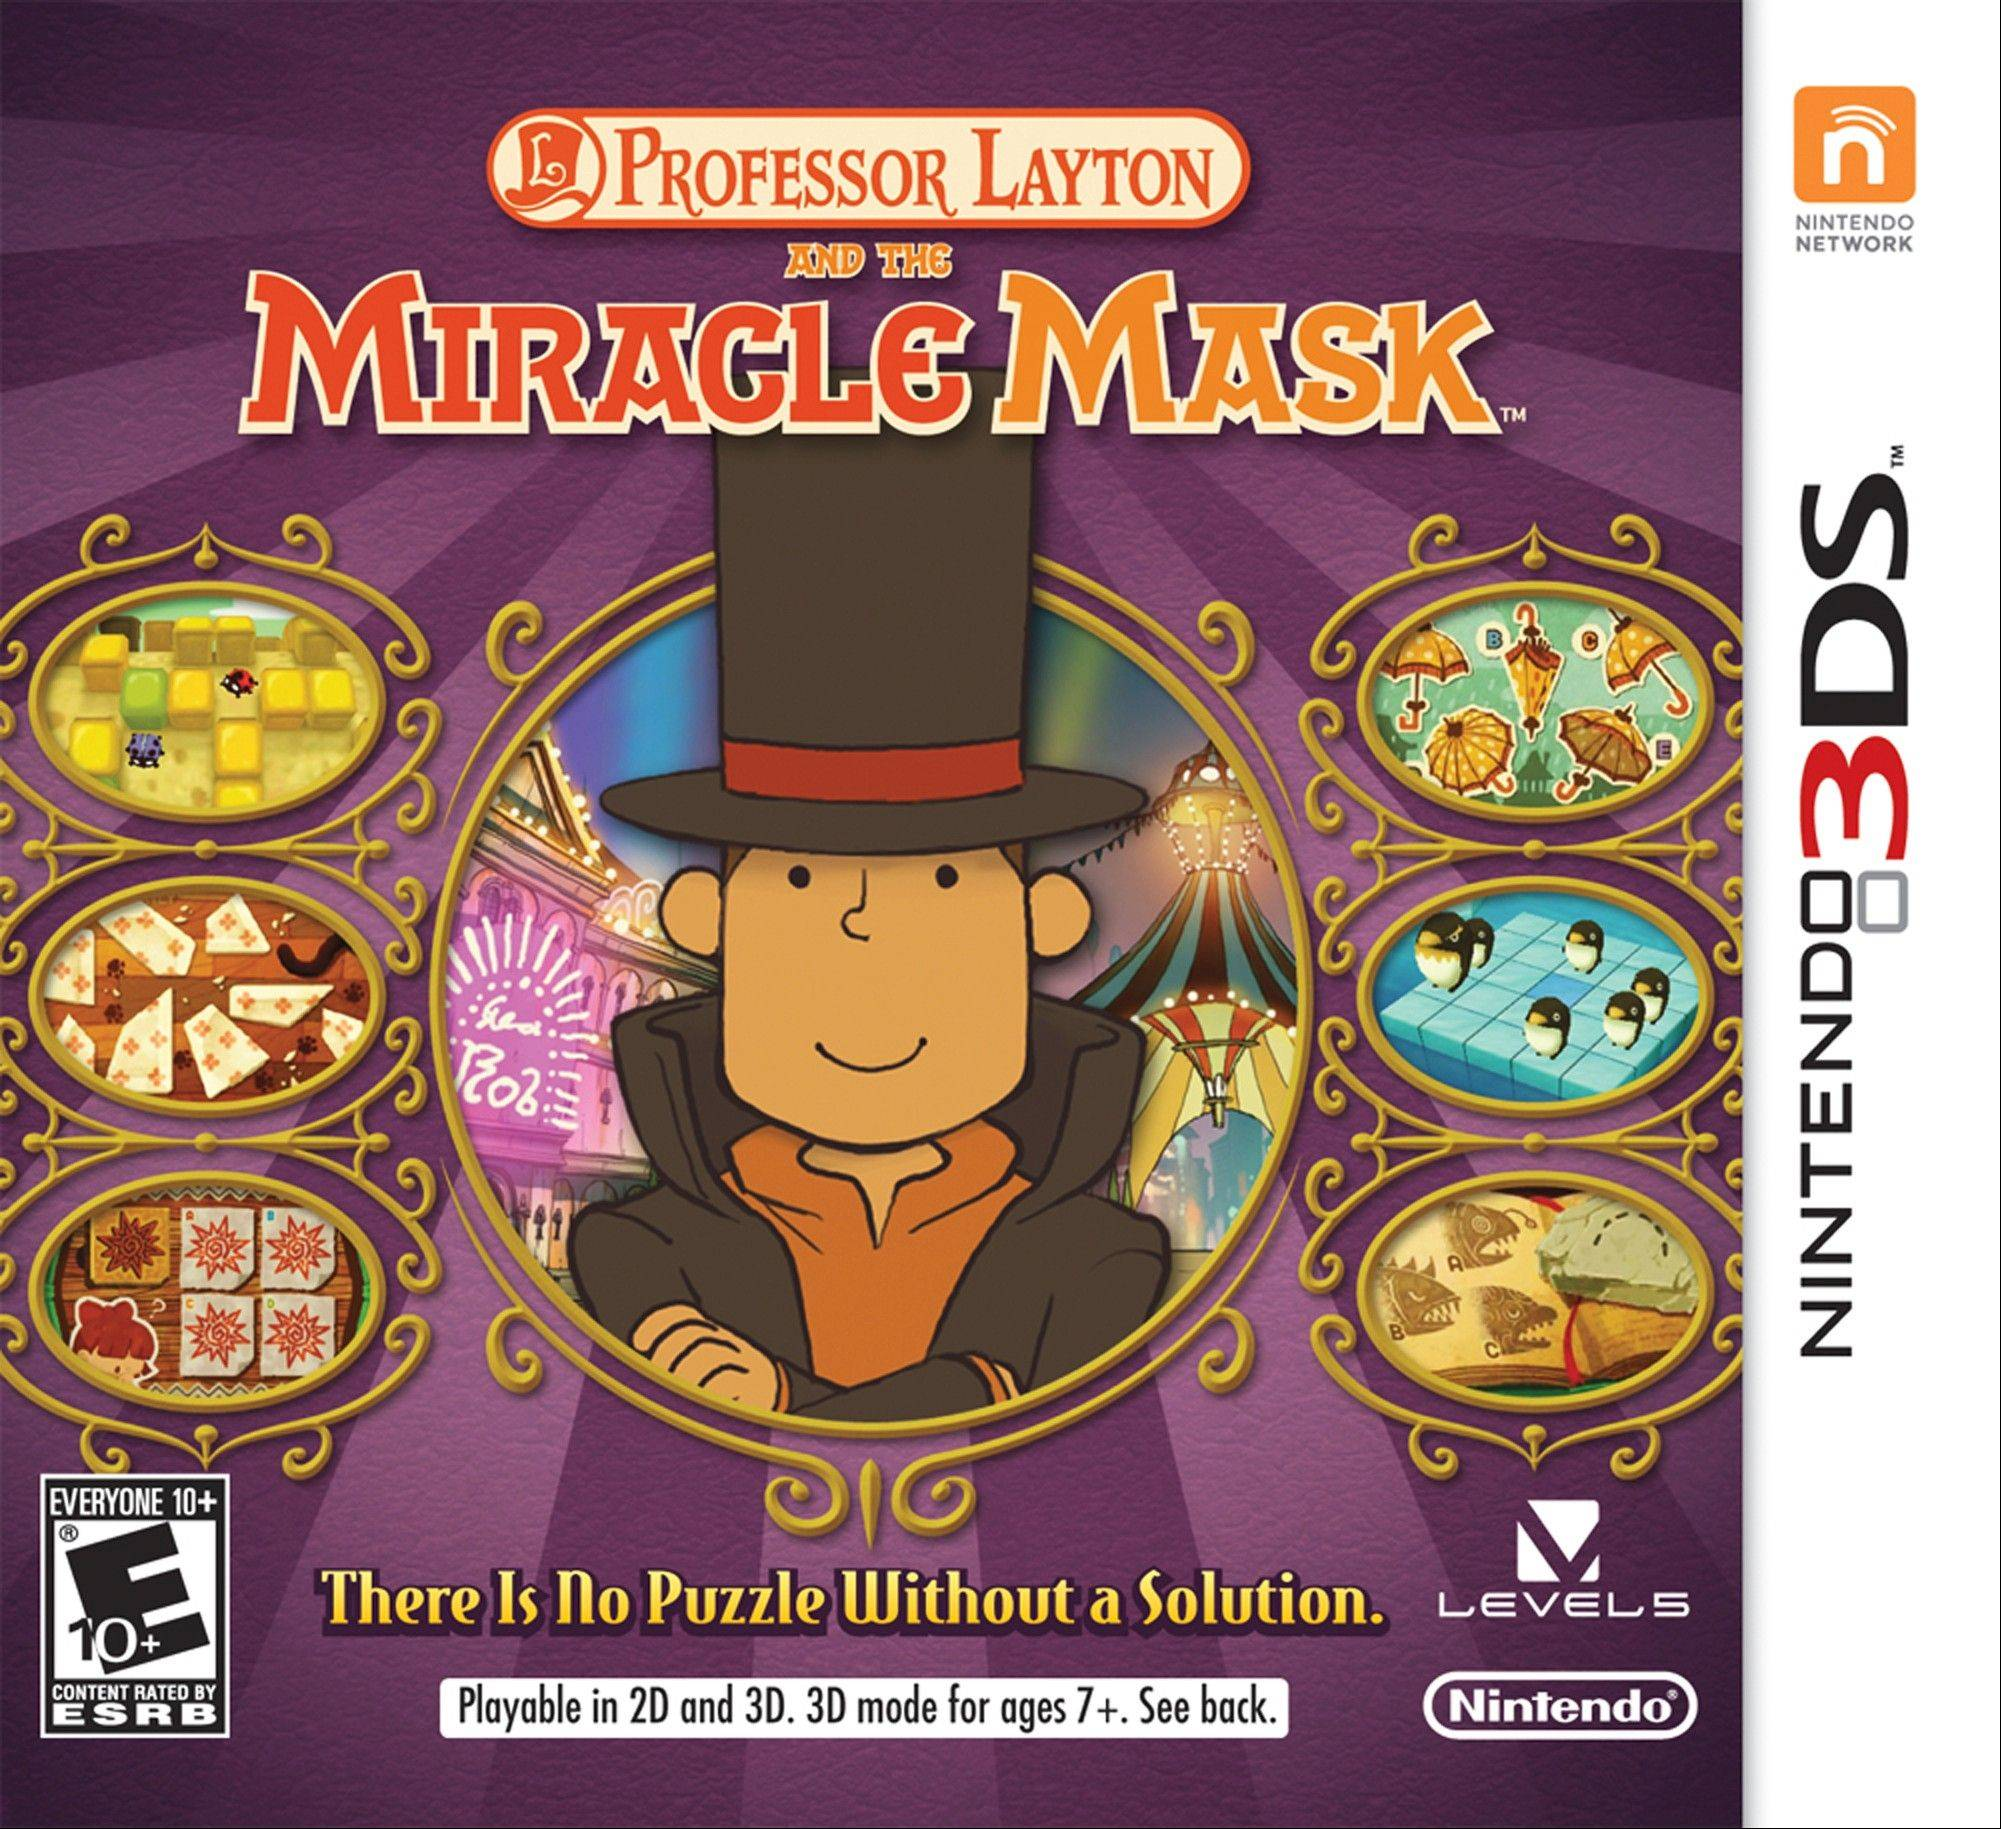 "In ""Professor Layton and the Miracle Mask,"" Professor Layton and his assistants explore the fictional city of Monte d'Or as the player solves puzzles and tracks down a mysterious figure who has turned some residents of the city into stone."